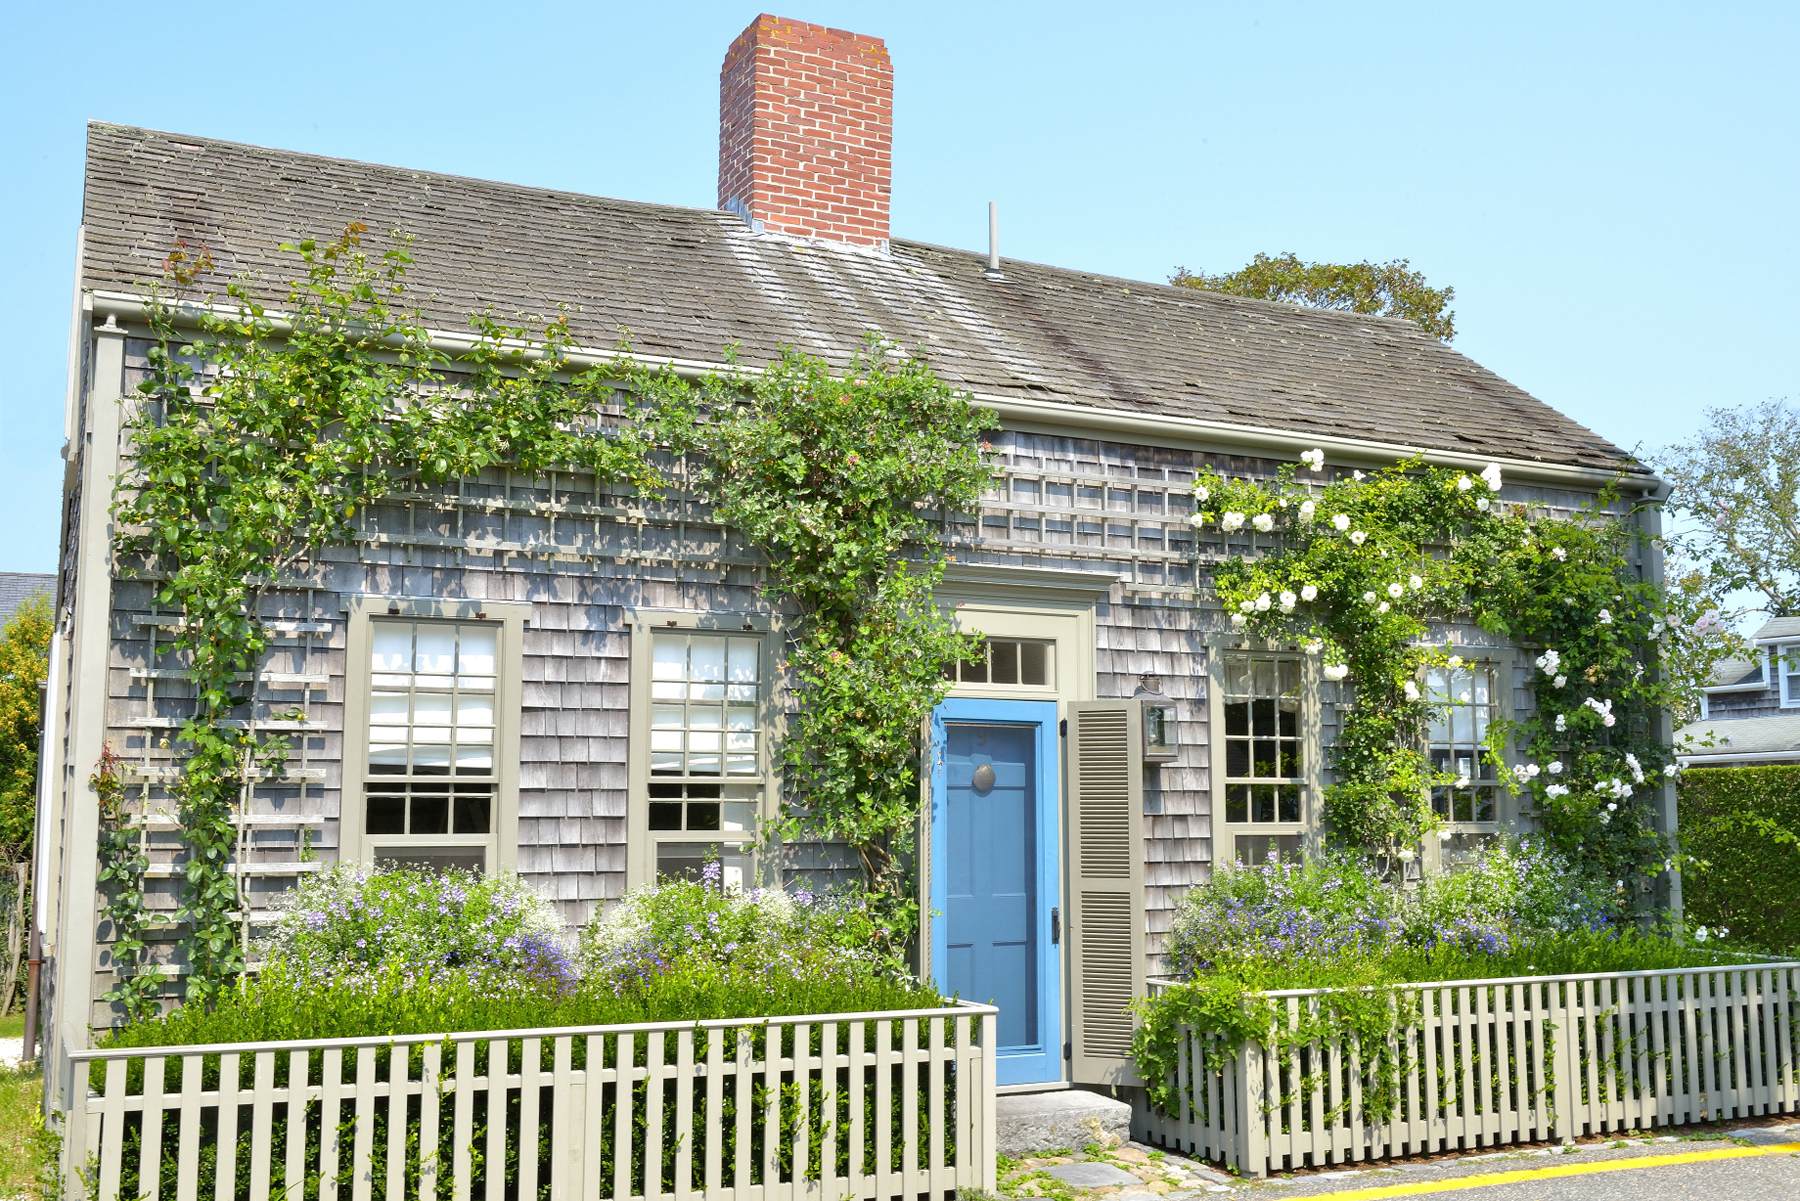 Casa Unifamiliar por un Venta en Peaceful Haven 9 Beaver Street Nantucket, Massachusetts 02554 Estados Unidos